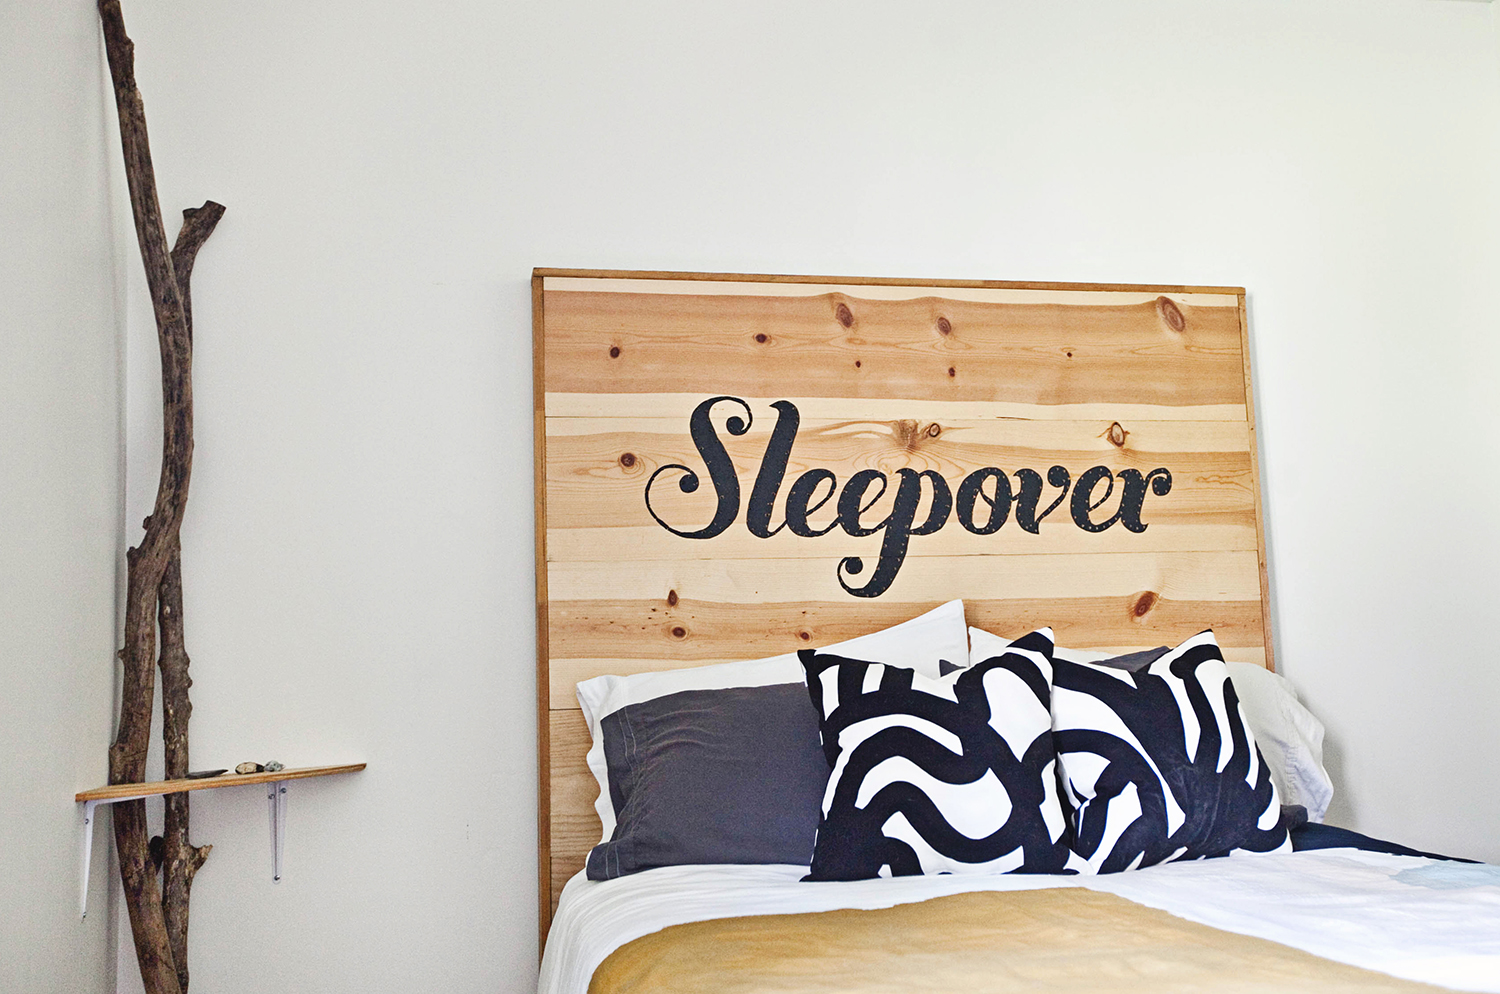 Bedframe diy